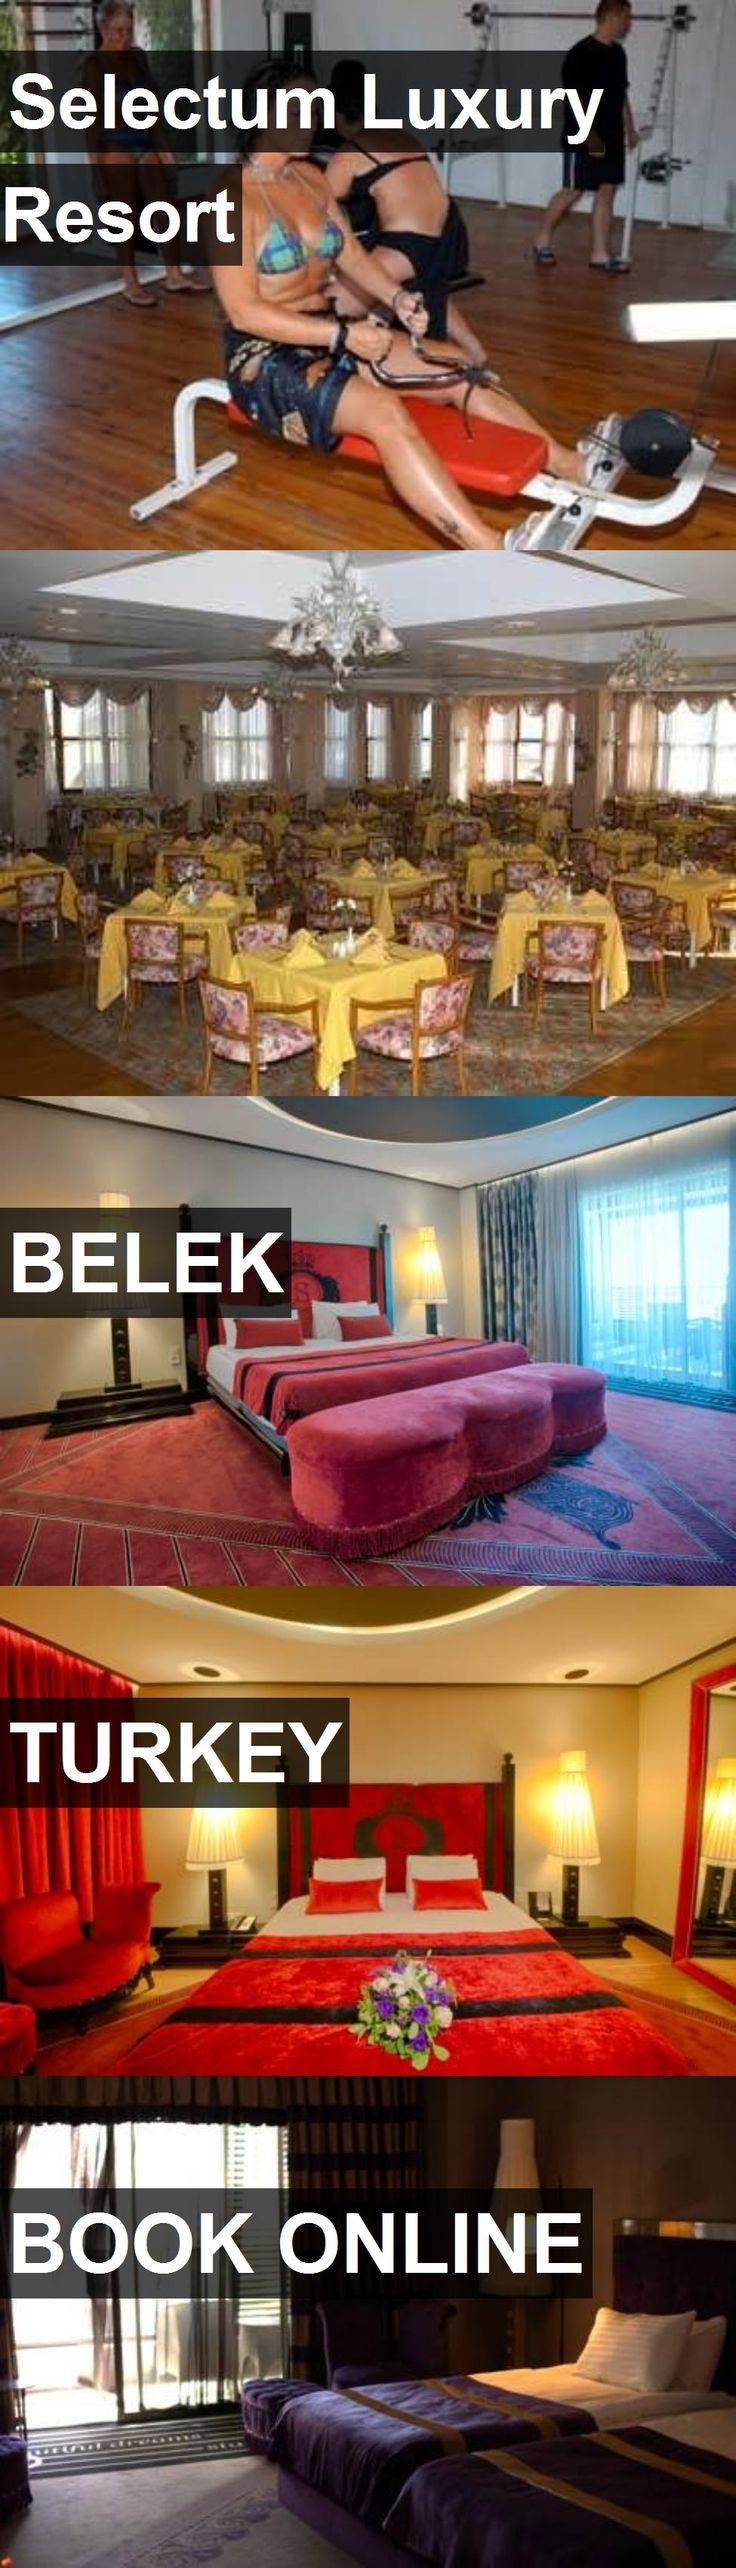 Hotel Selectum Luxury Resort in Belek, Turkey. For more information, photos, reviews and best prices please follow the link. #Turkey #Belek #hotel #travel #vacation